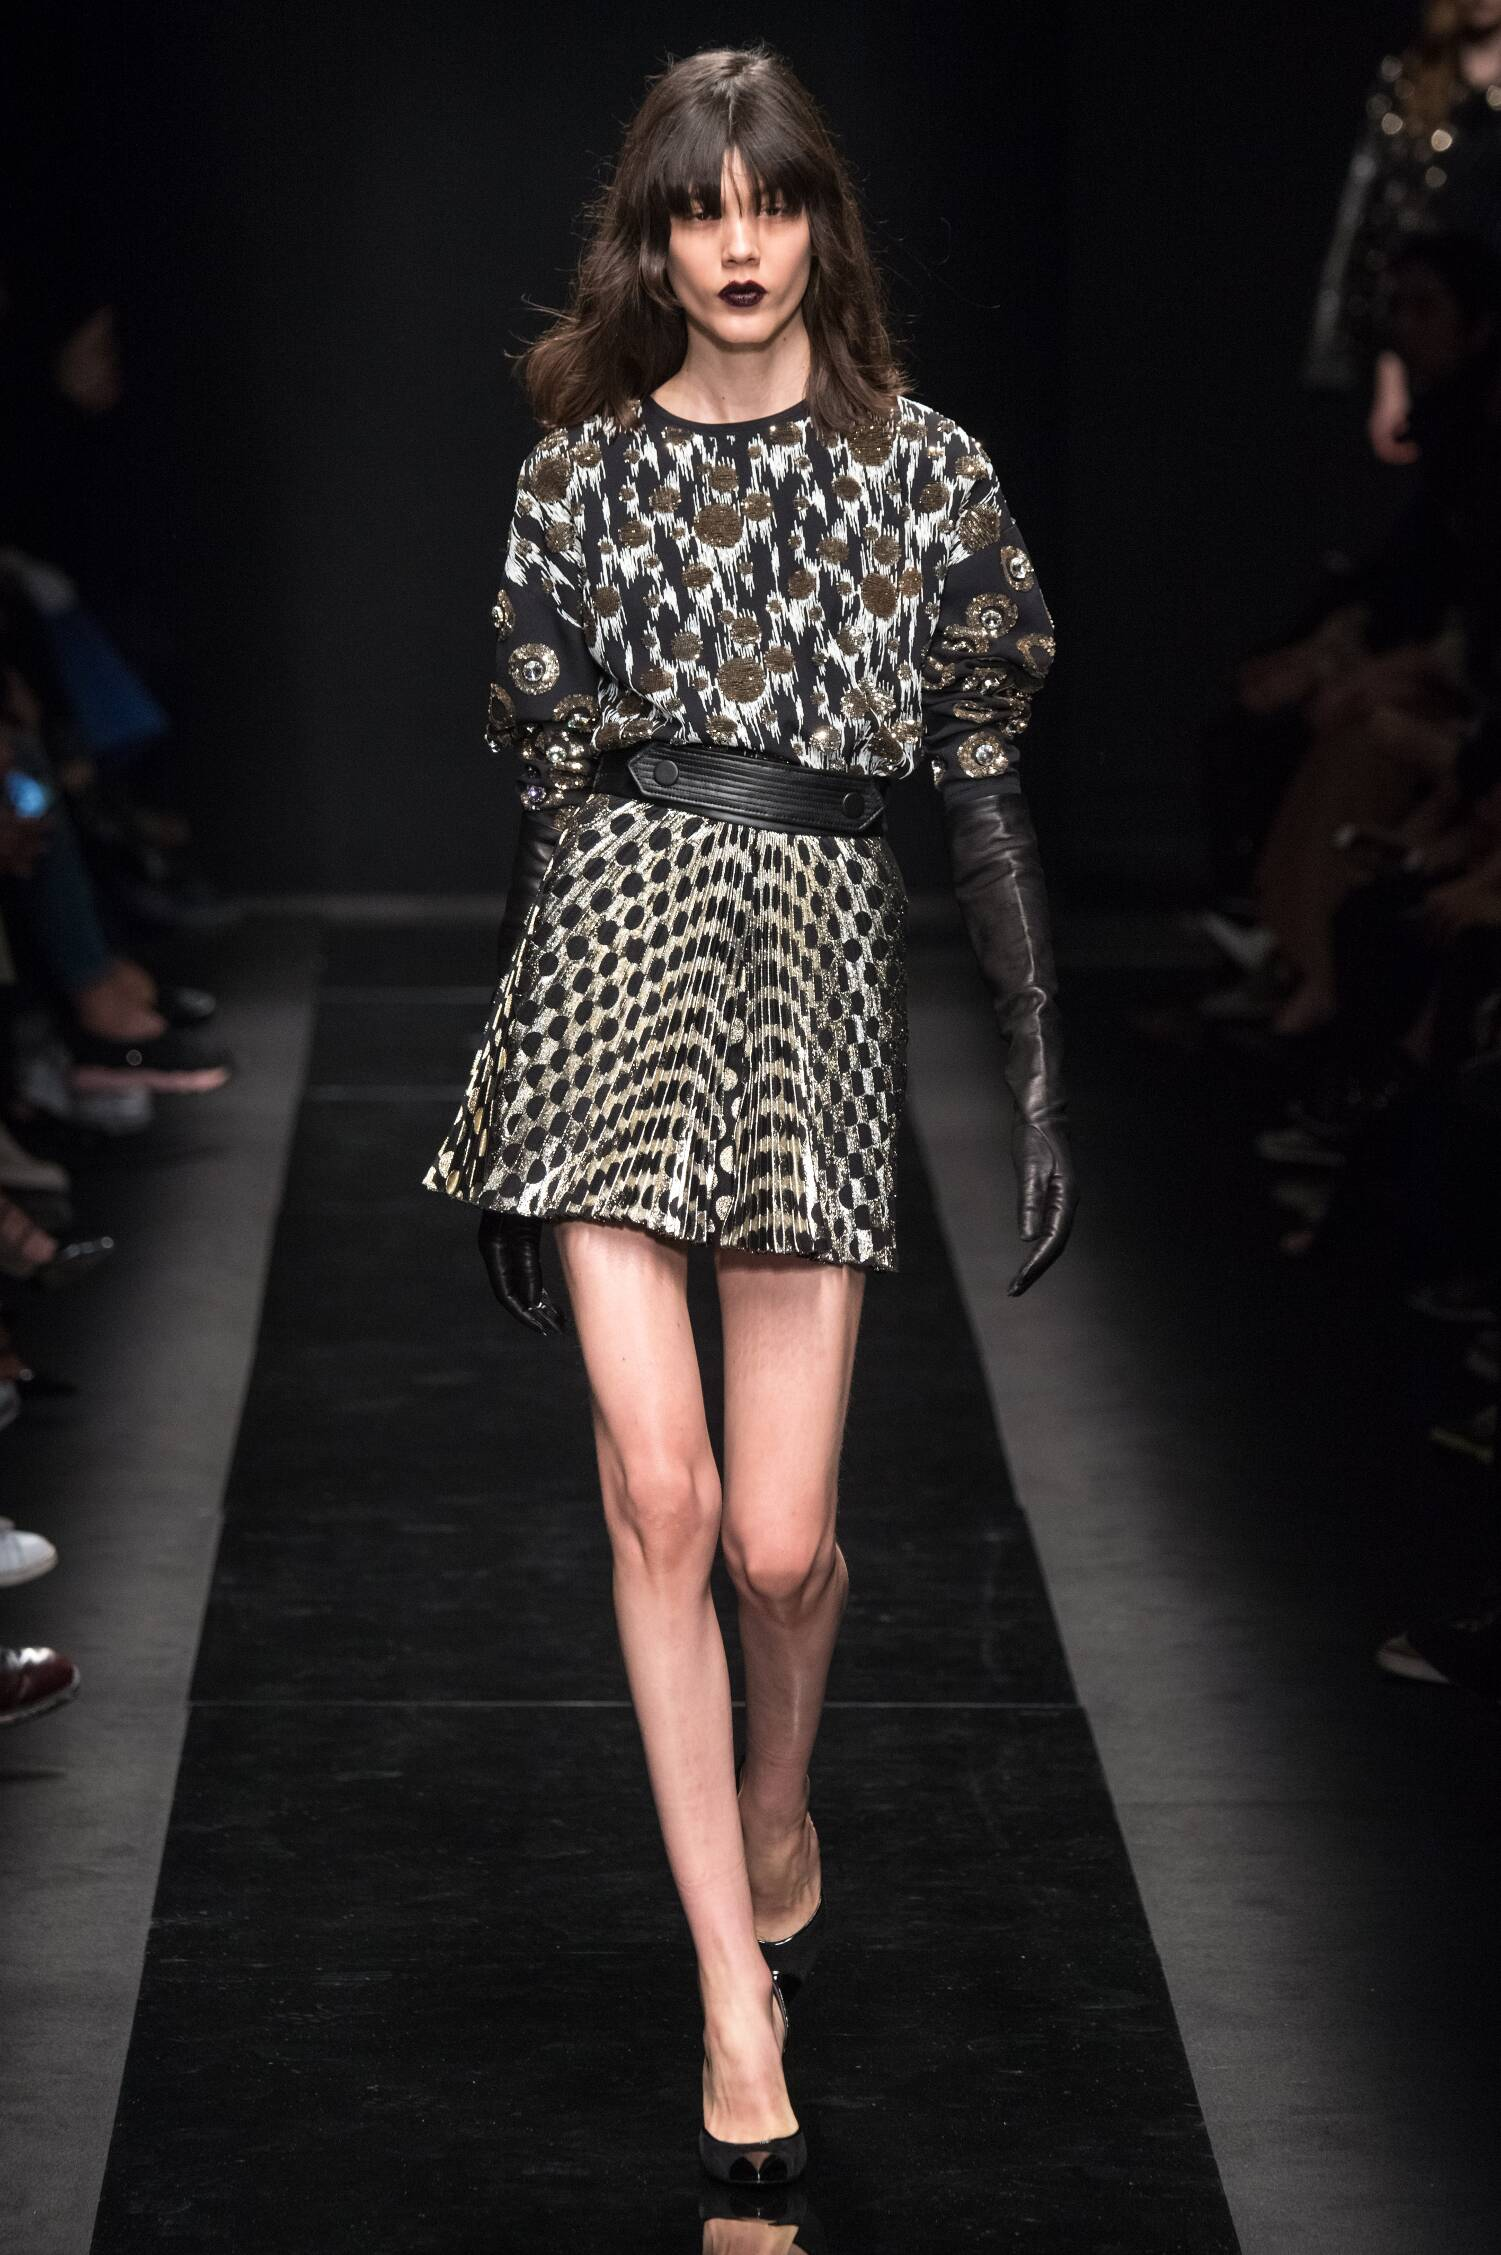 Fall Emanuel Ungaro Collection Fashion Women Model